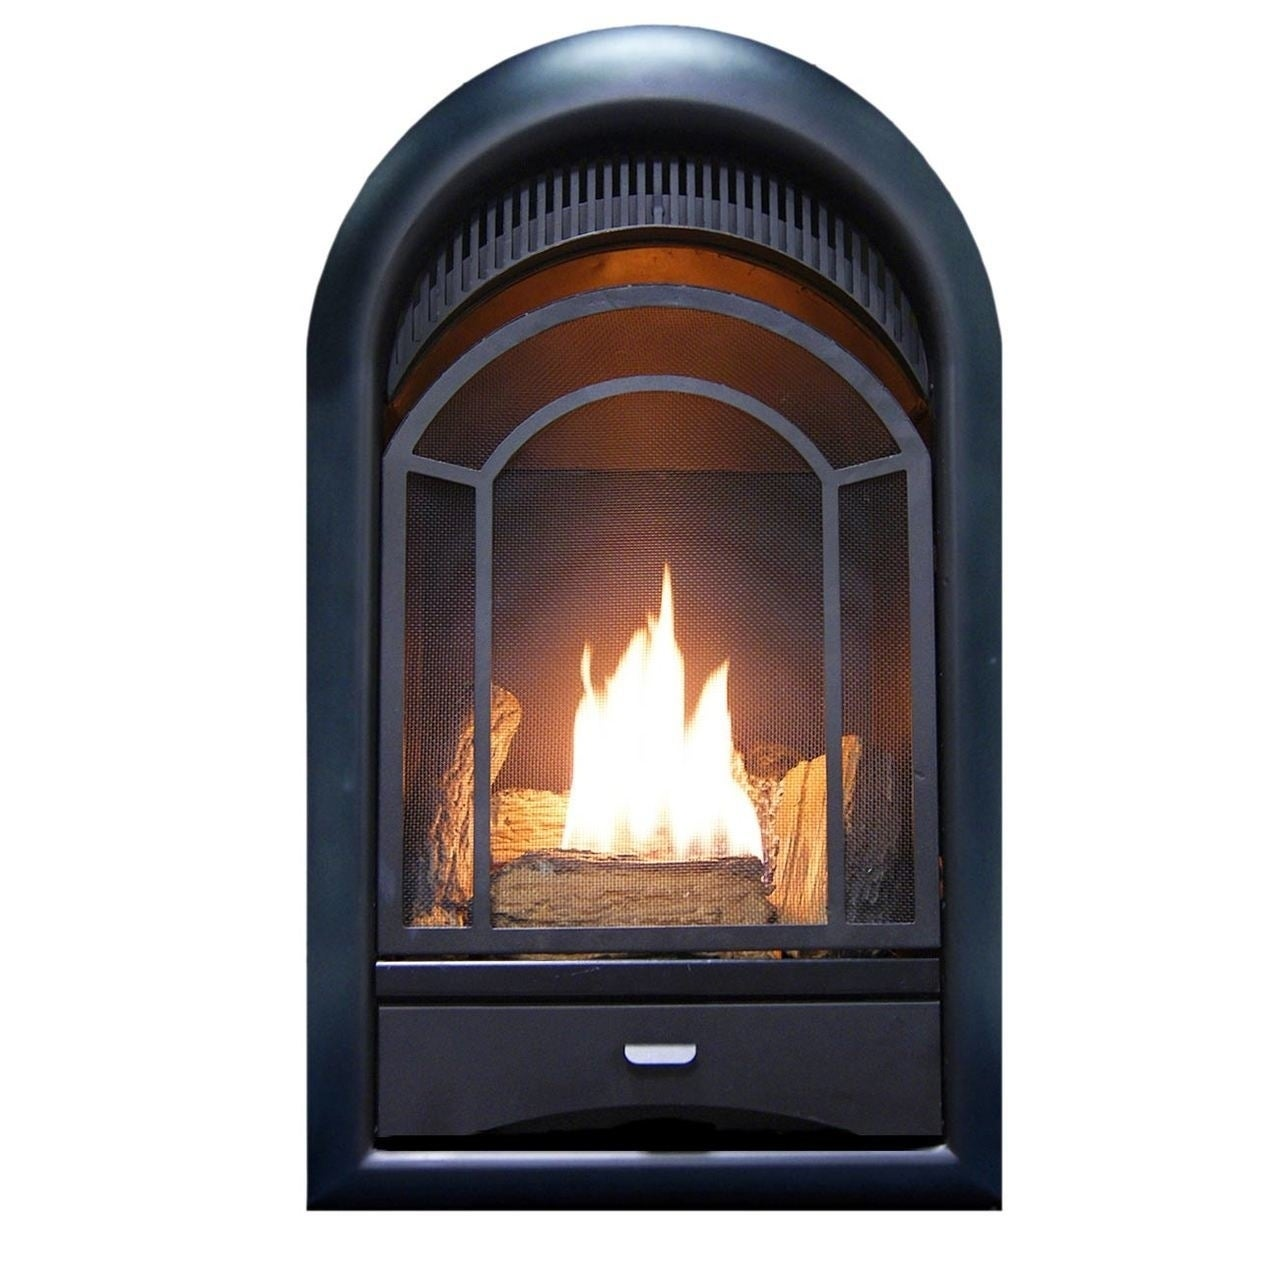 Shop Procom Ventless Fireplace Insert Thermostat Control Arched Door